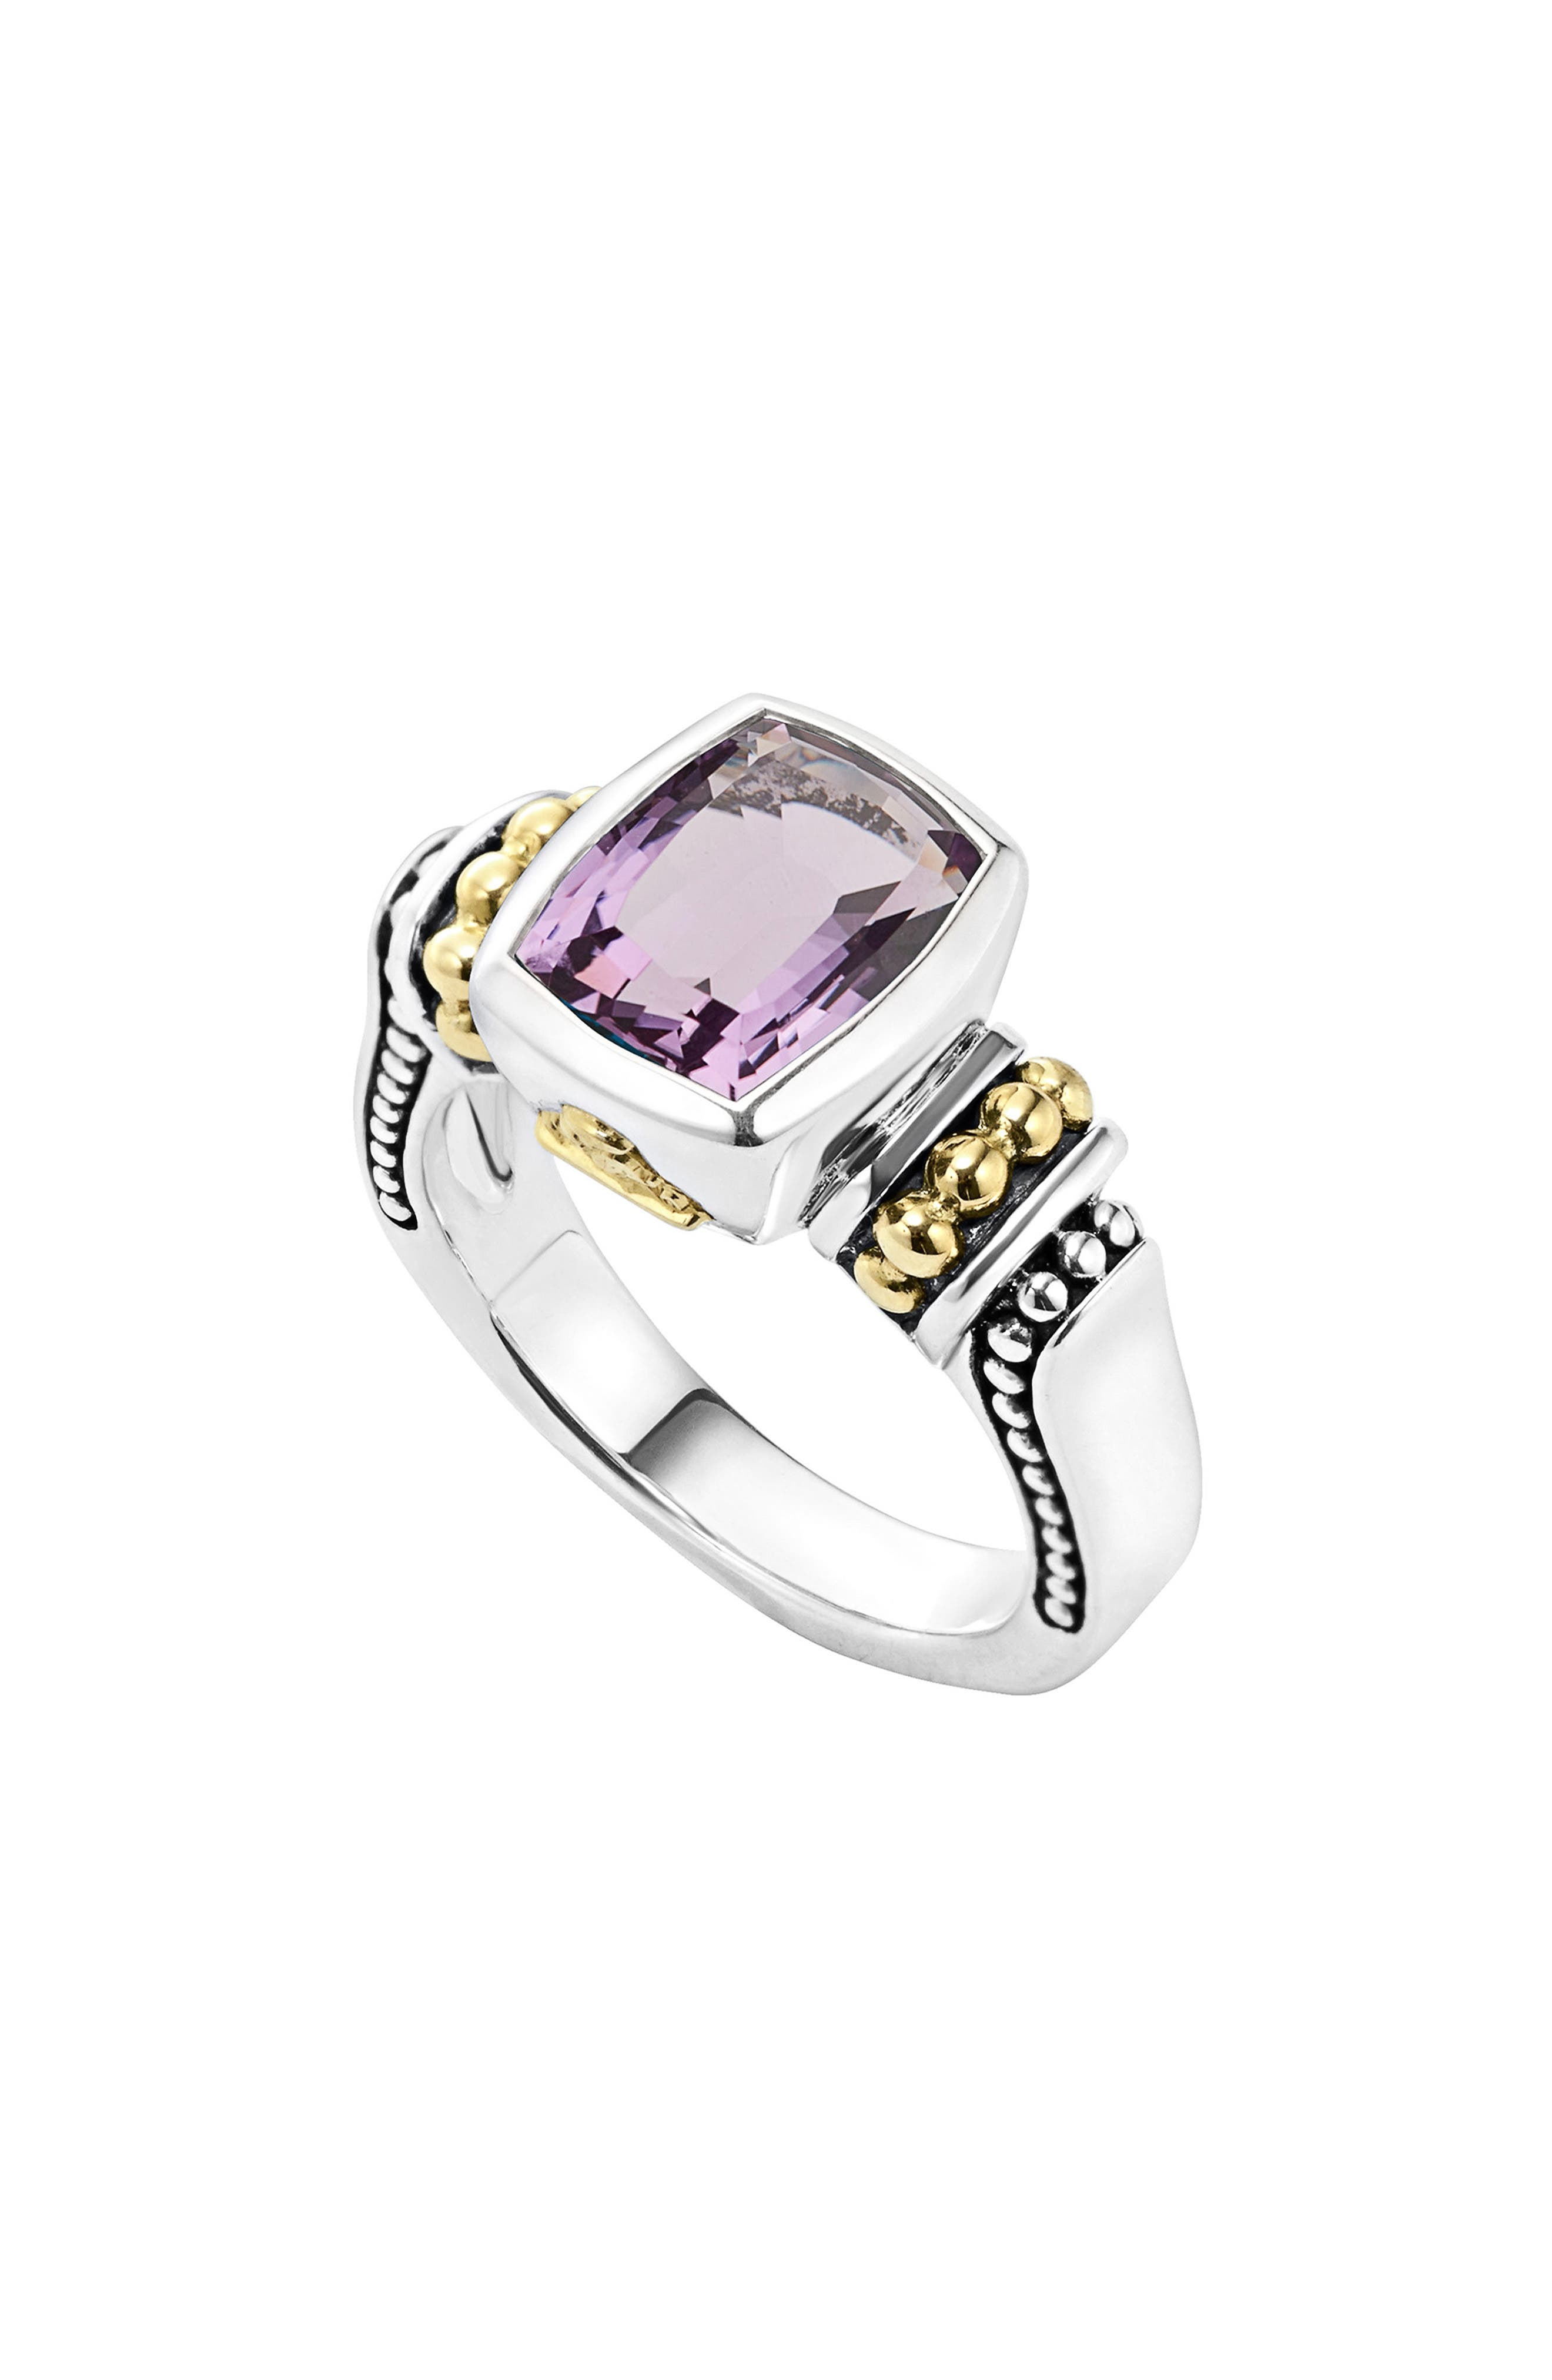 'Caviar Color' Small Semiprecious Stone Ring,                             Main thumbnail 1, color,                             Amethyst